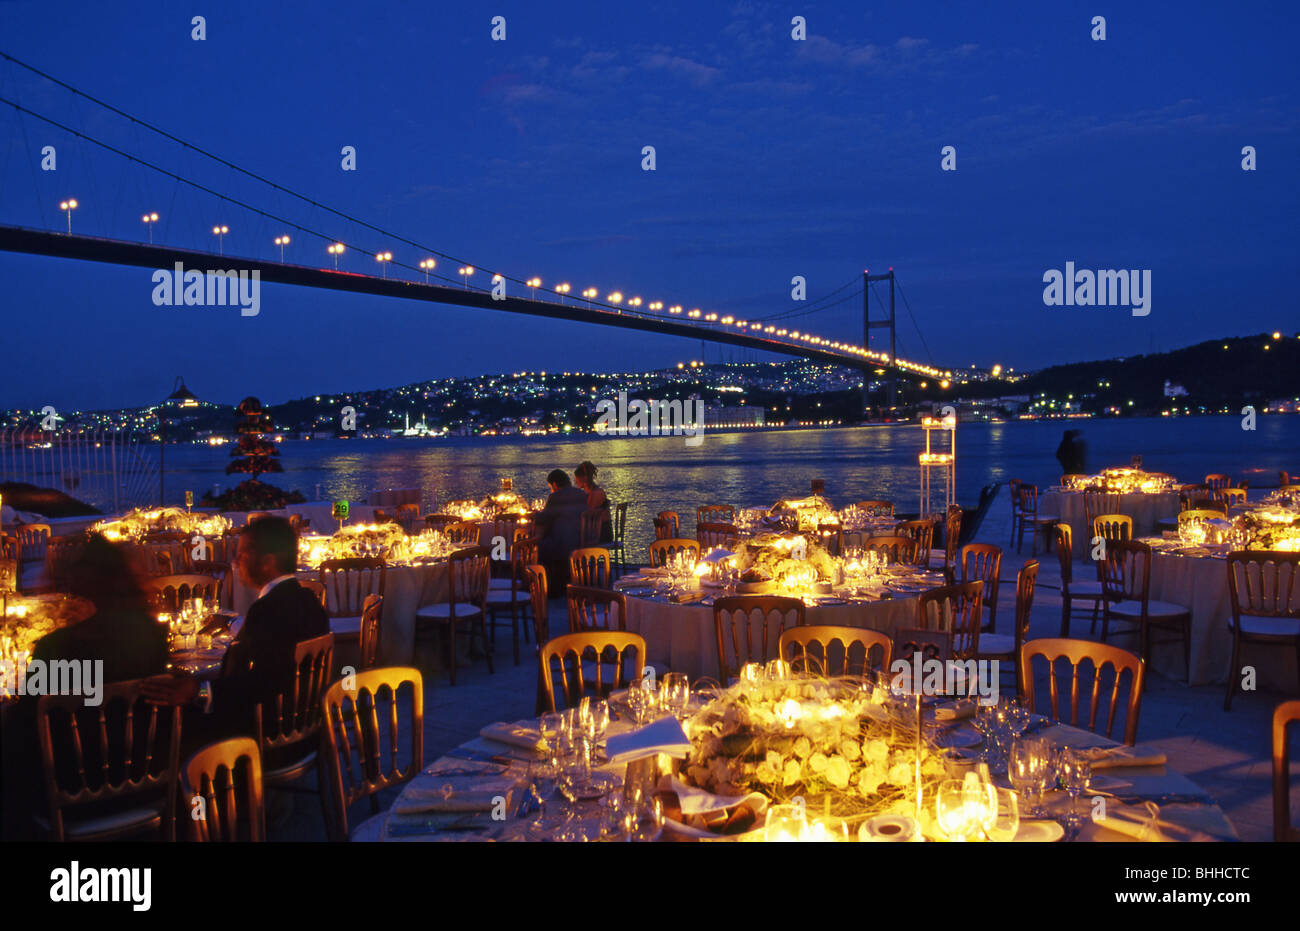 Best of istanbul life 402 - 1 3